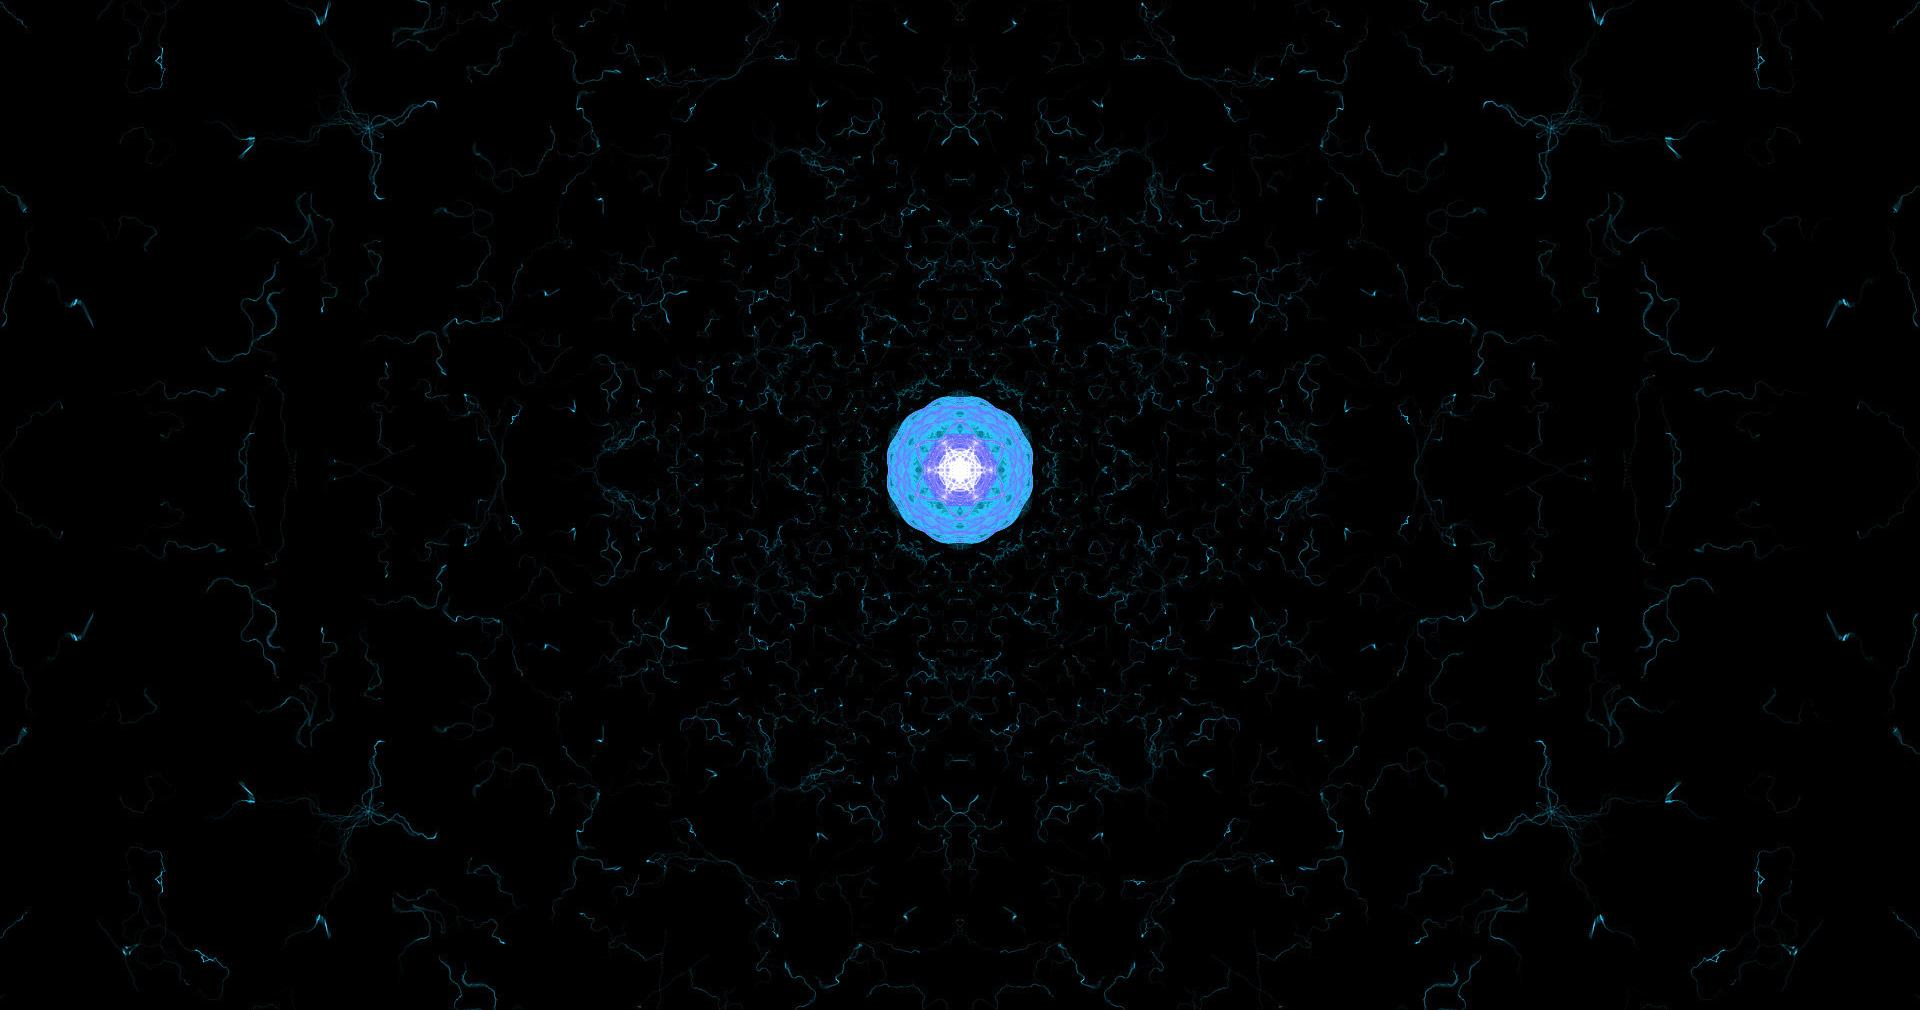 Blue star wallpapers HD quality